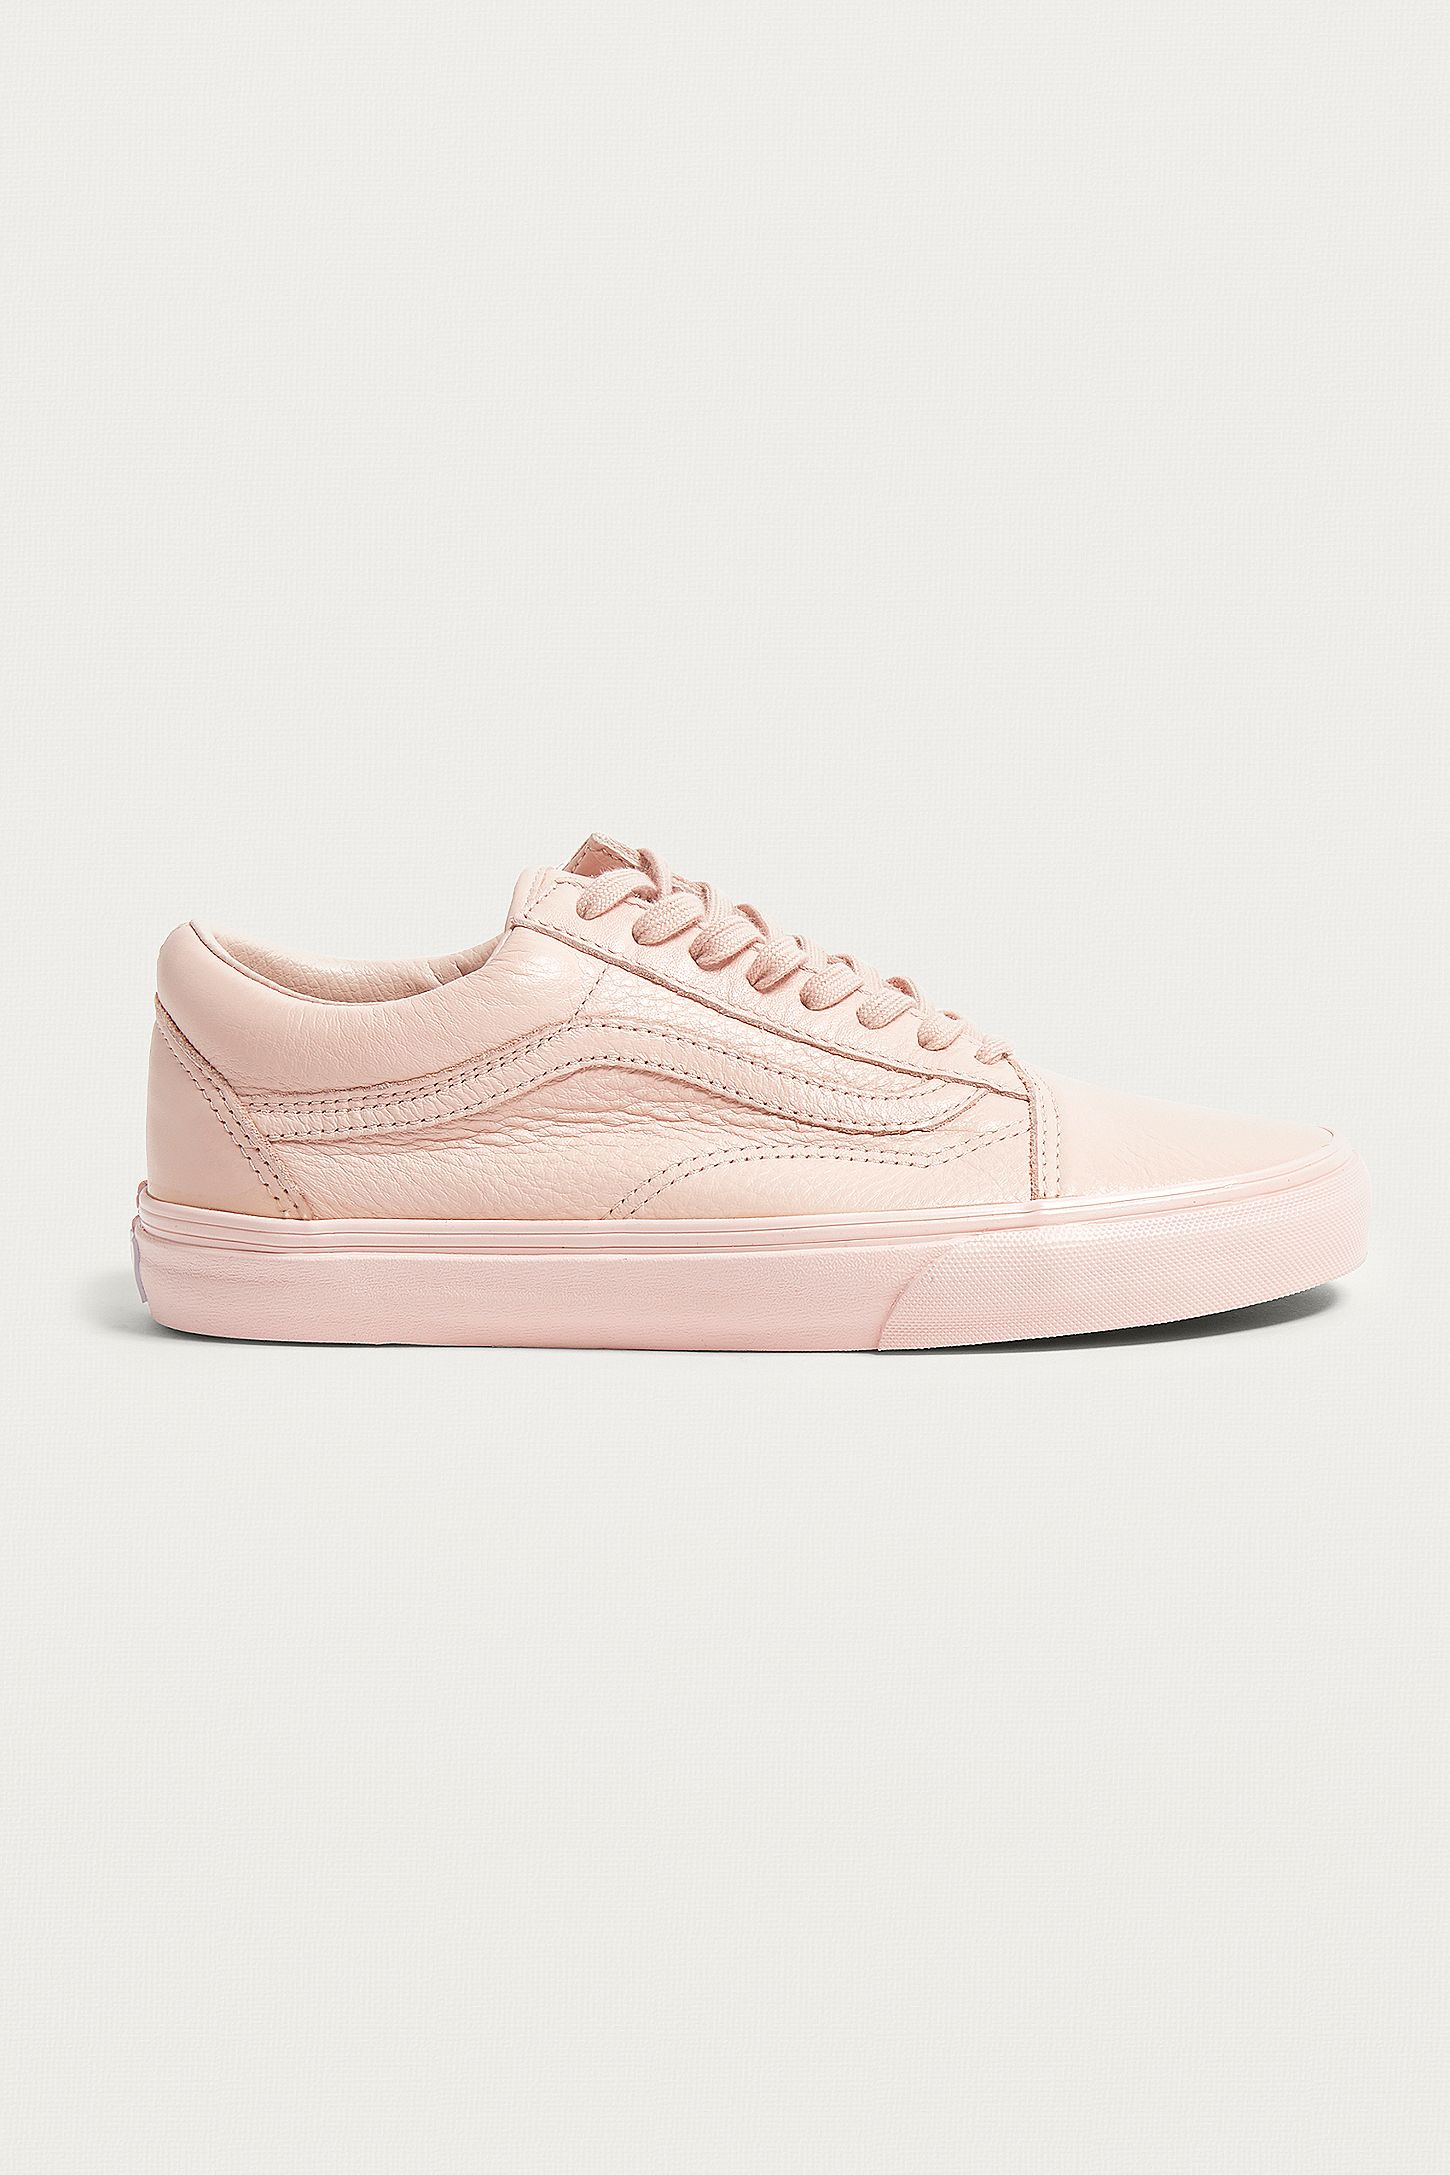 454f585ac6 Vans Old Skool Pink Leather Trainers